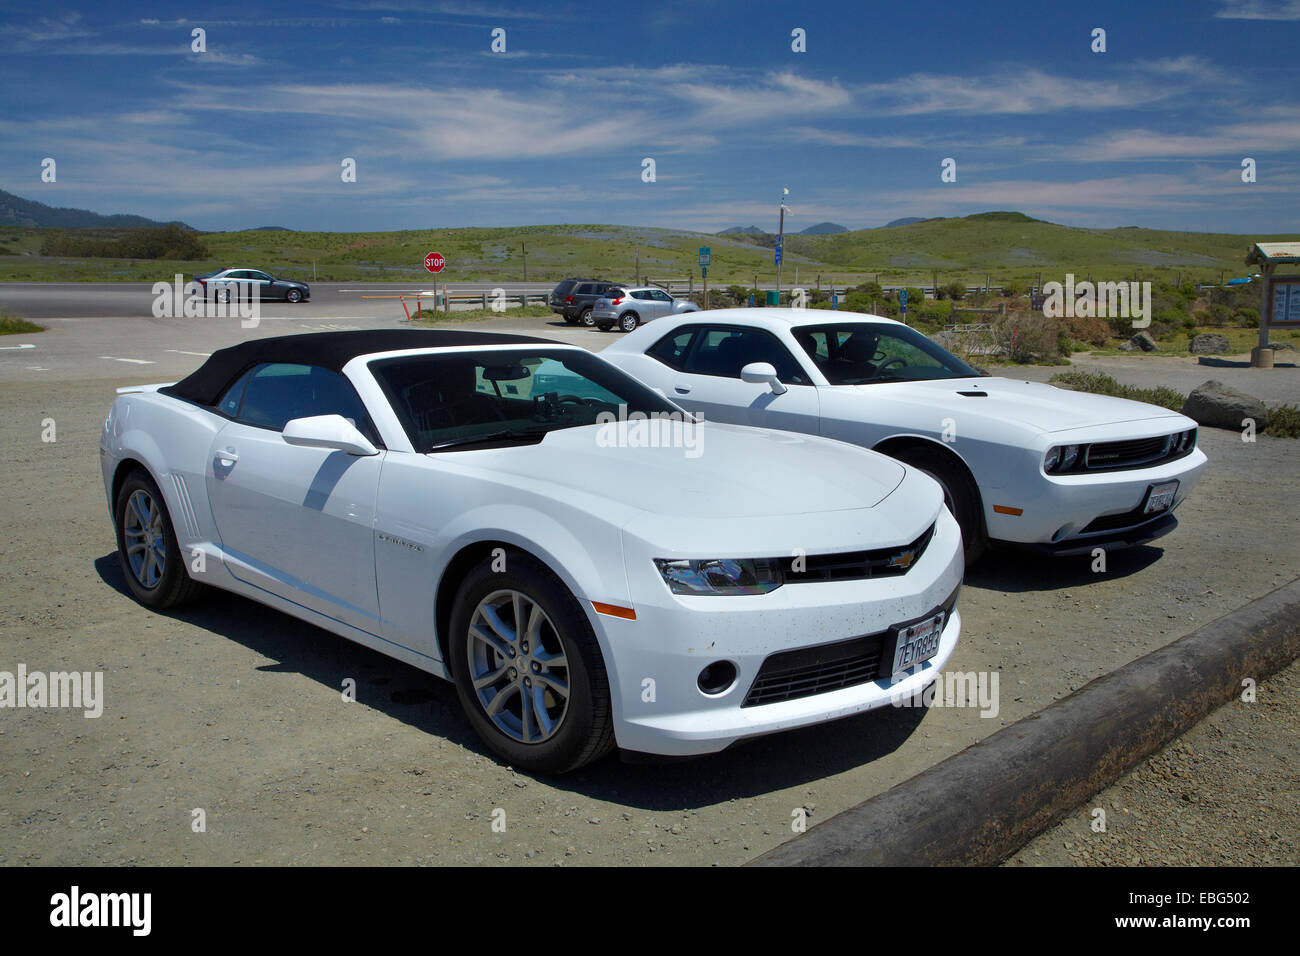 chevrolet comaro and dodge challenger sports cars by pacific coast stock photo royalty free. Black Bedroom Furniture Sets. Home Design Ideas